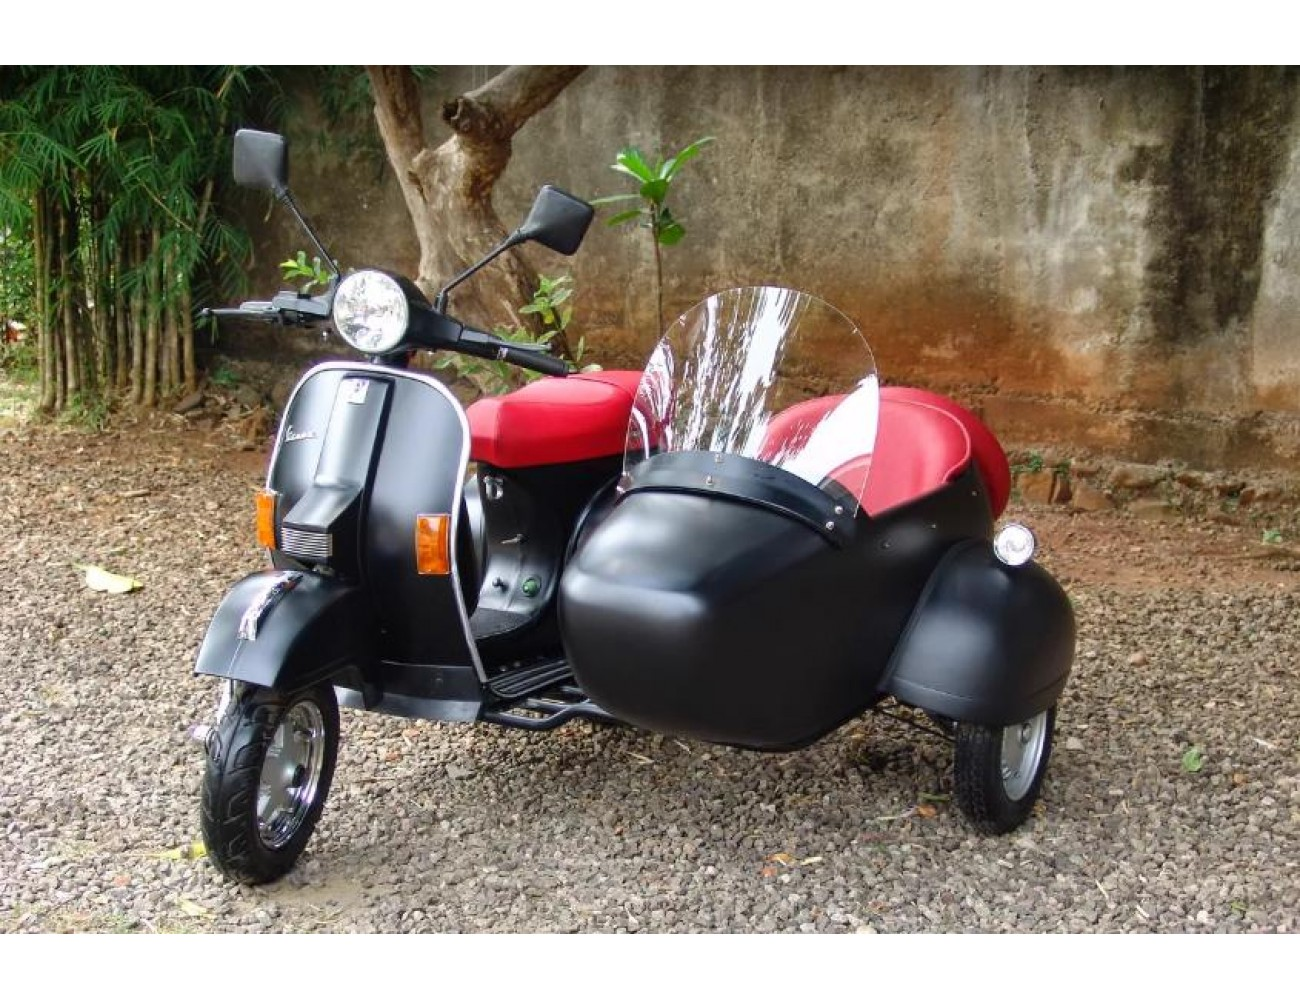 VESPA Italian Scooter PX 150cc with Sidecar